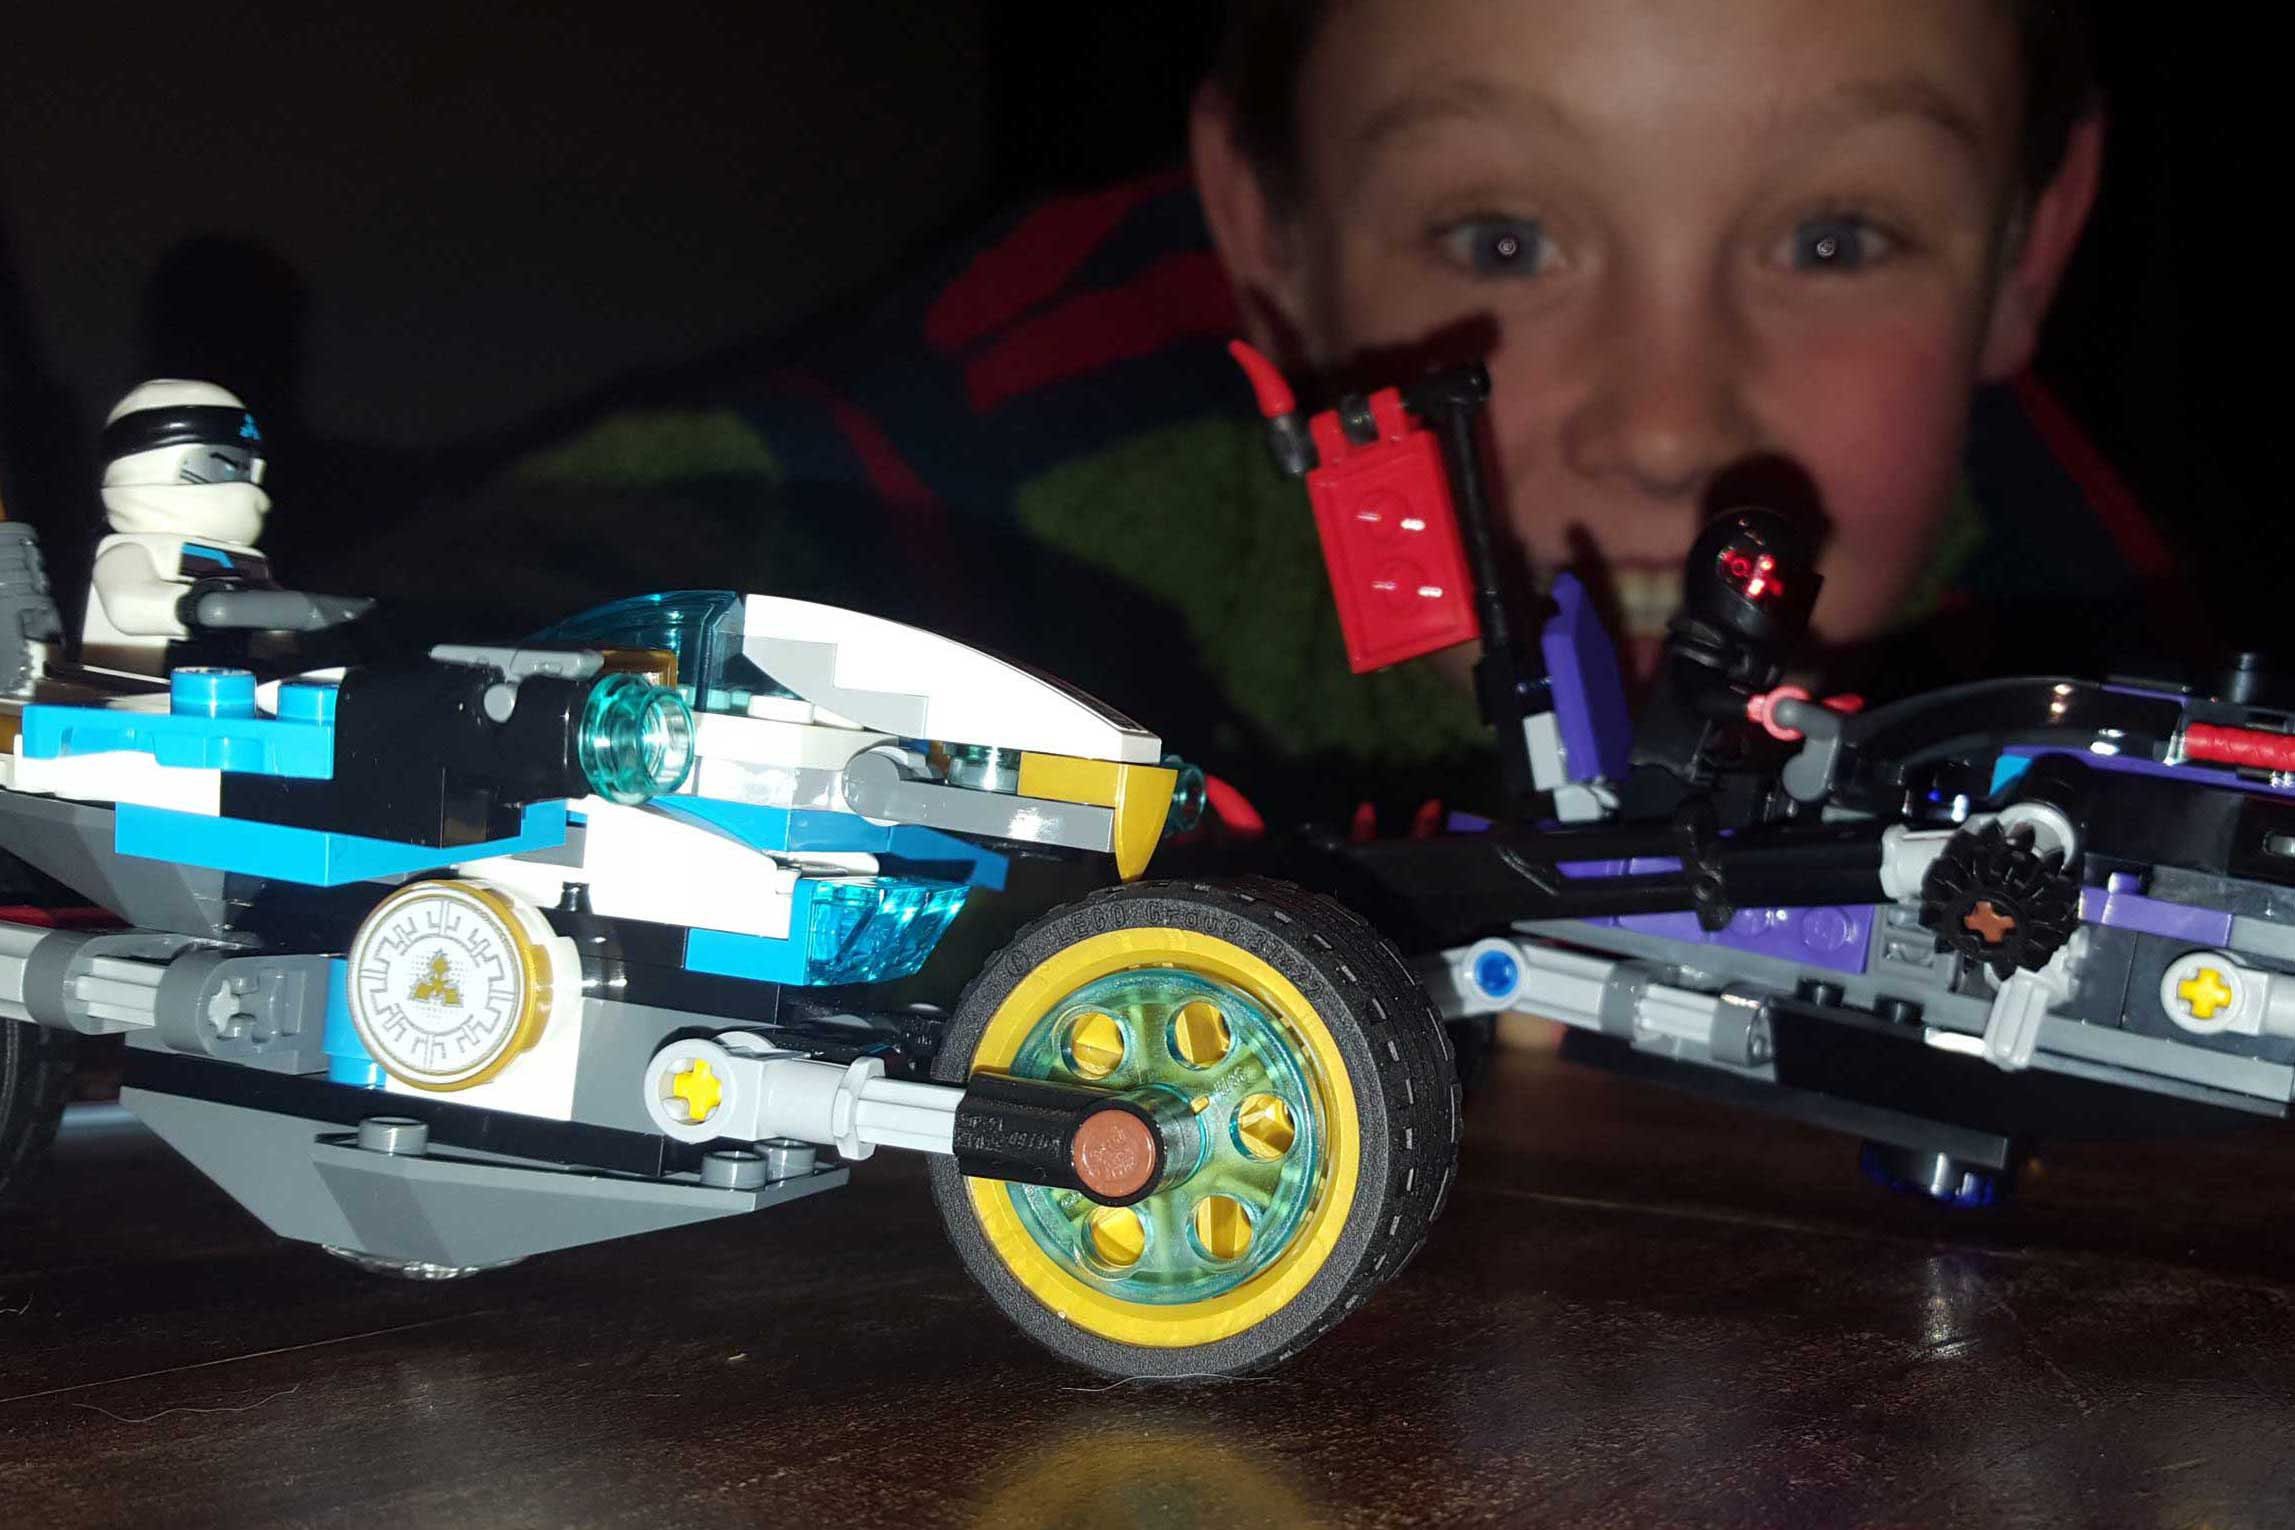 Kid with lego